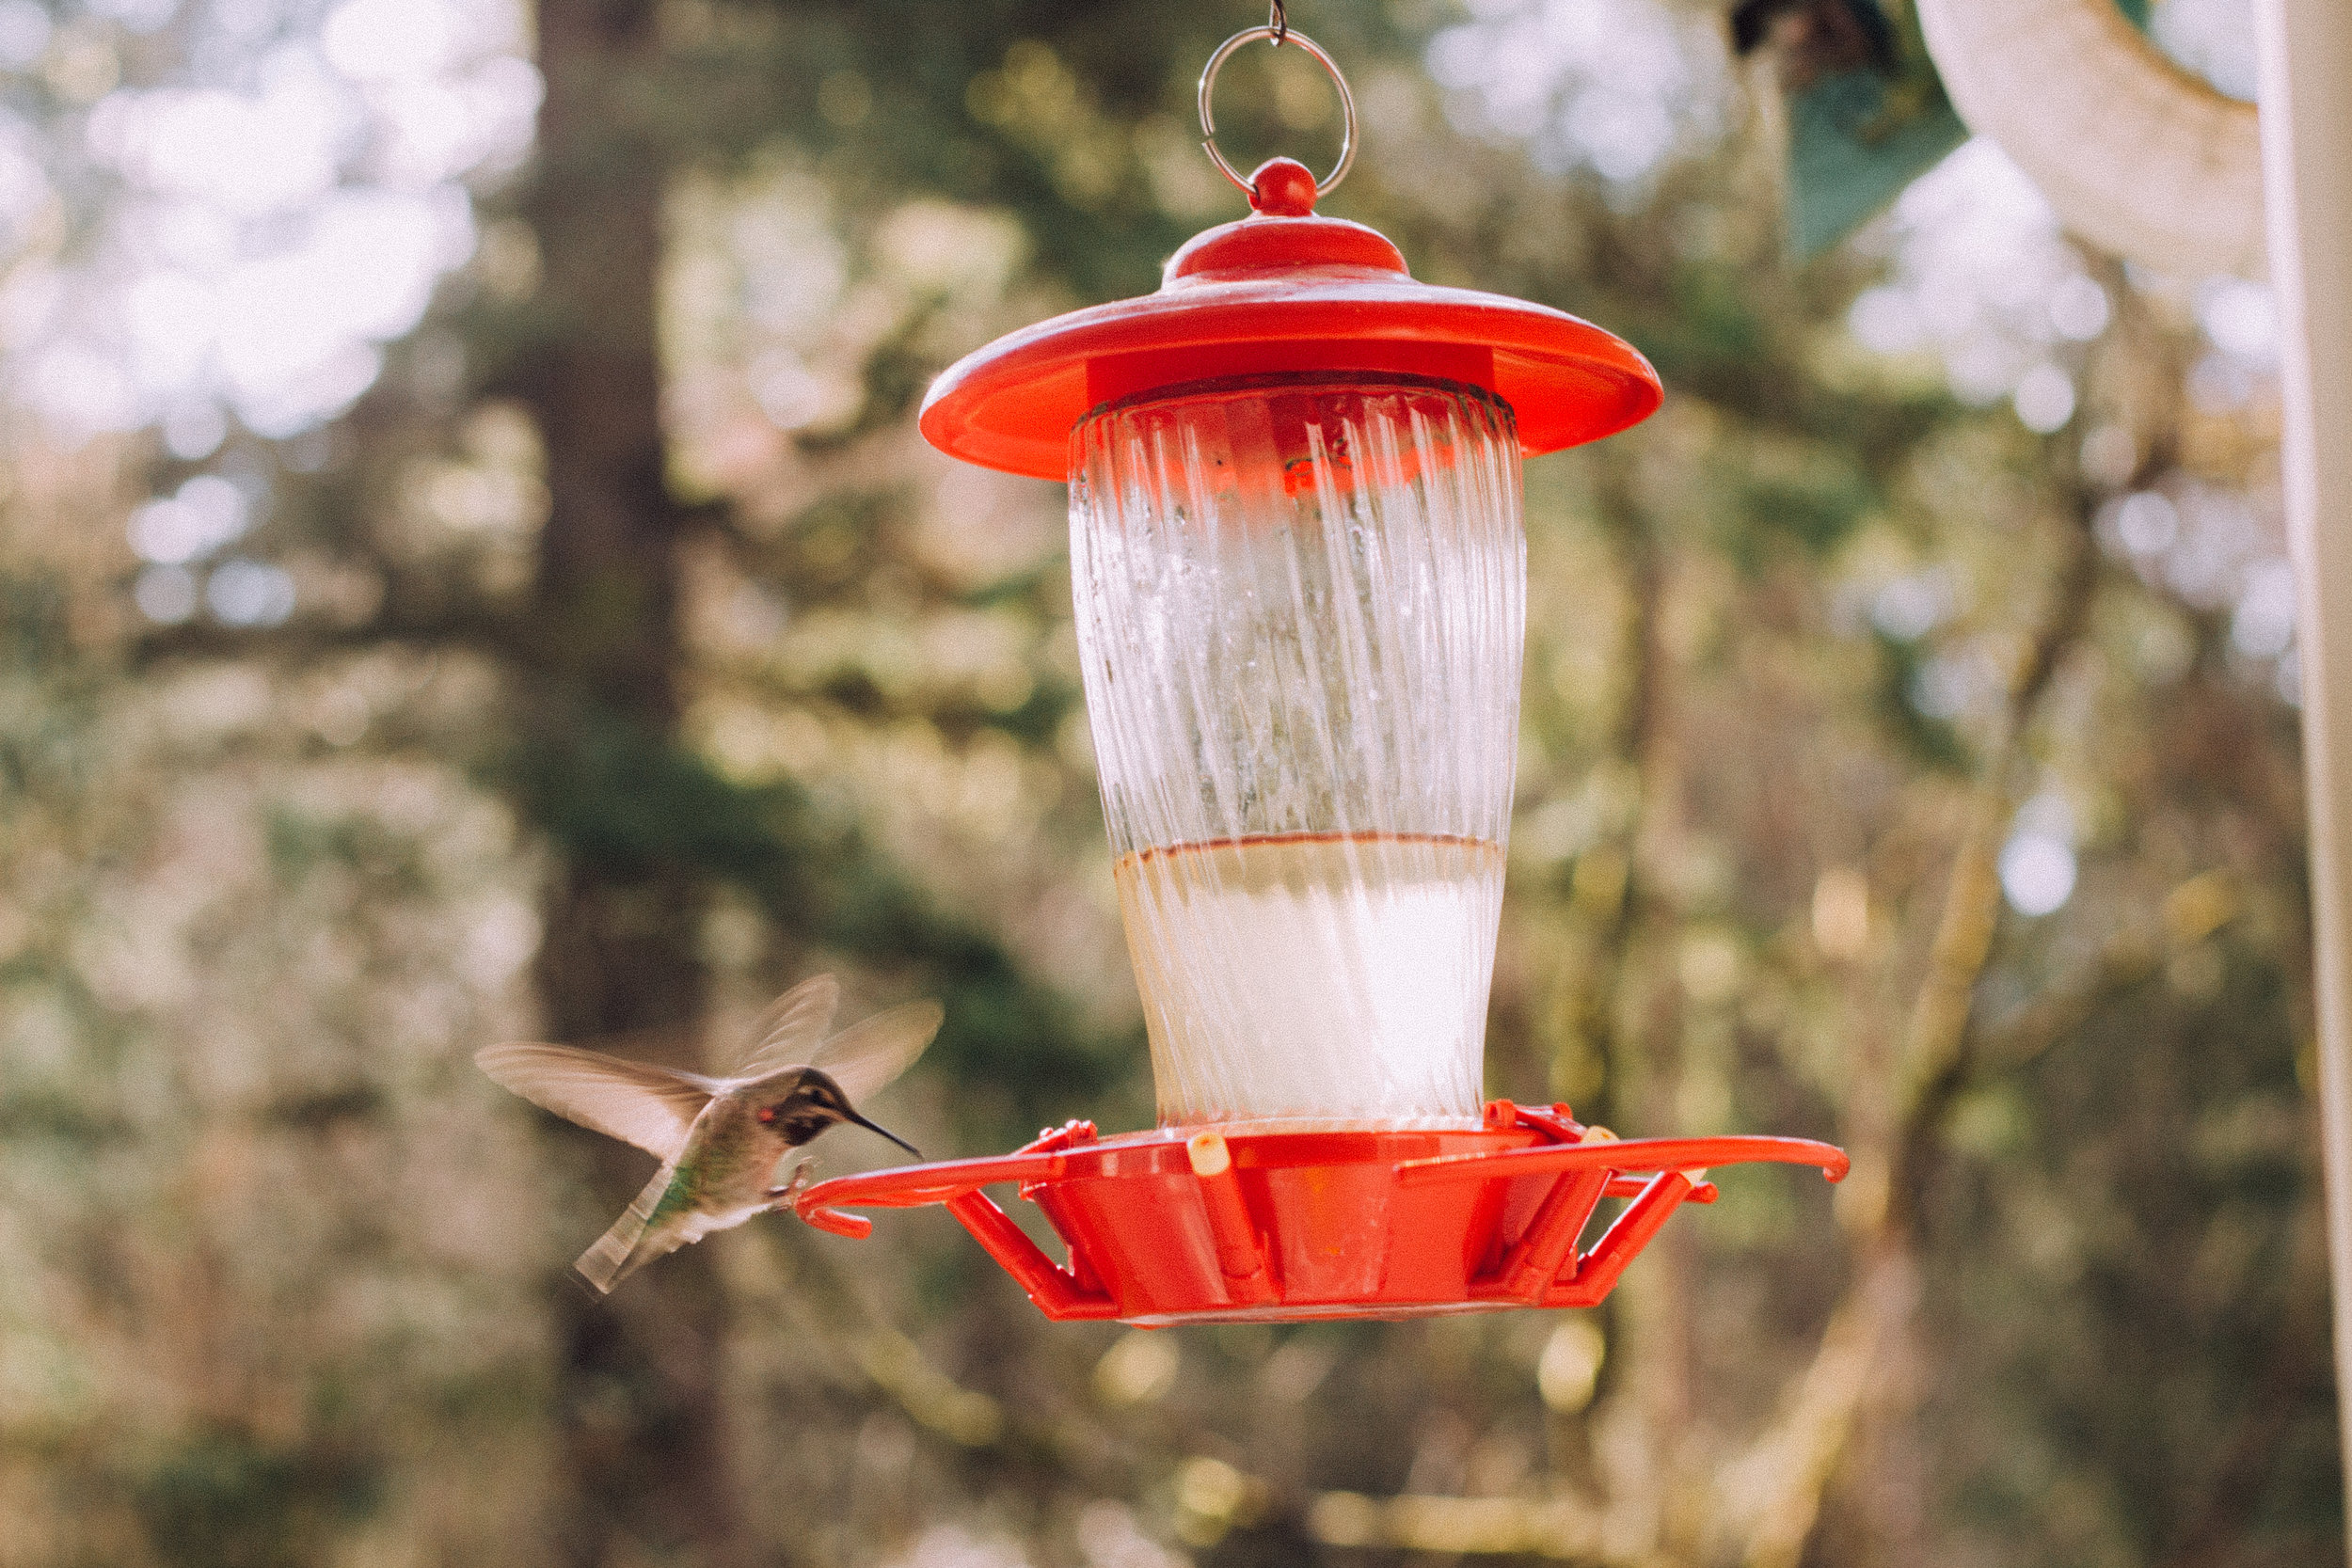 The number of times a hummingbird's wings beat is different from one species to another, and ranges from 720 to 5400 times per minute when hovering.